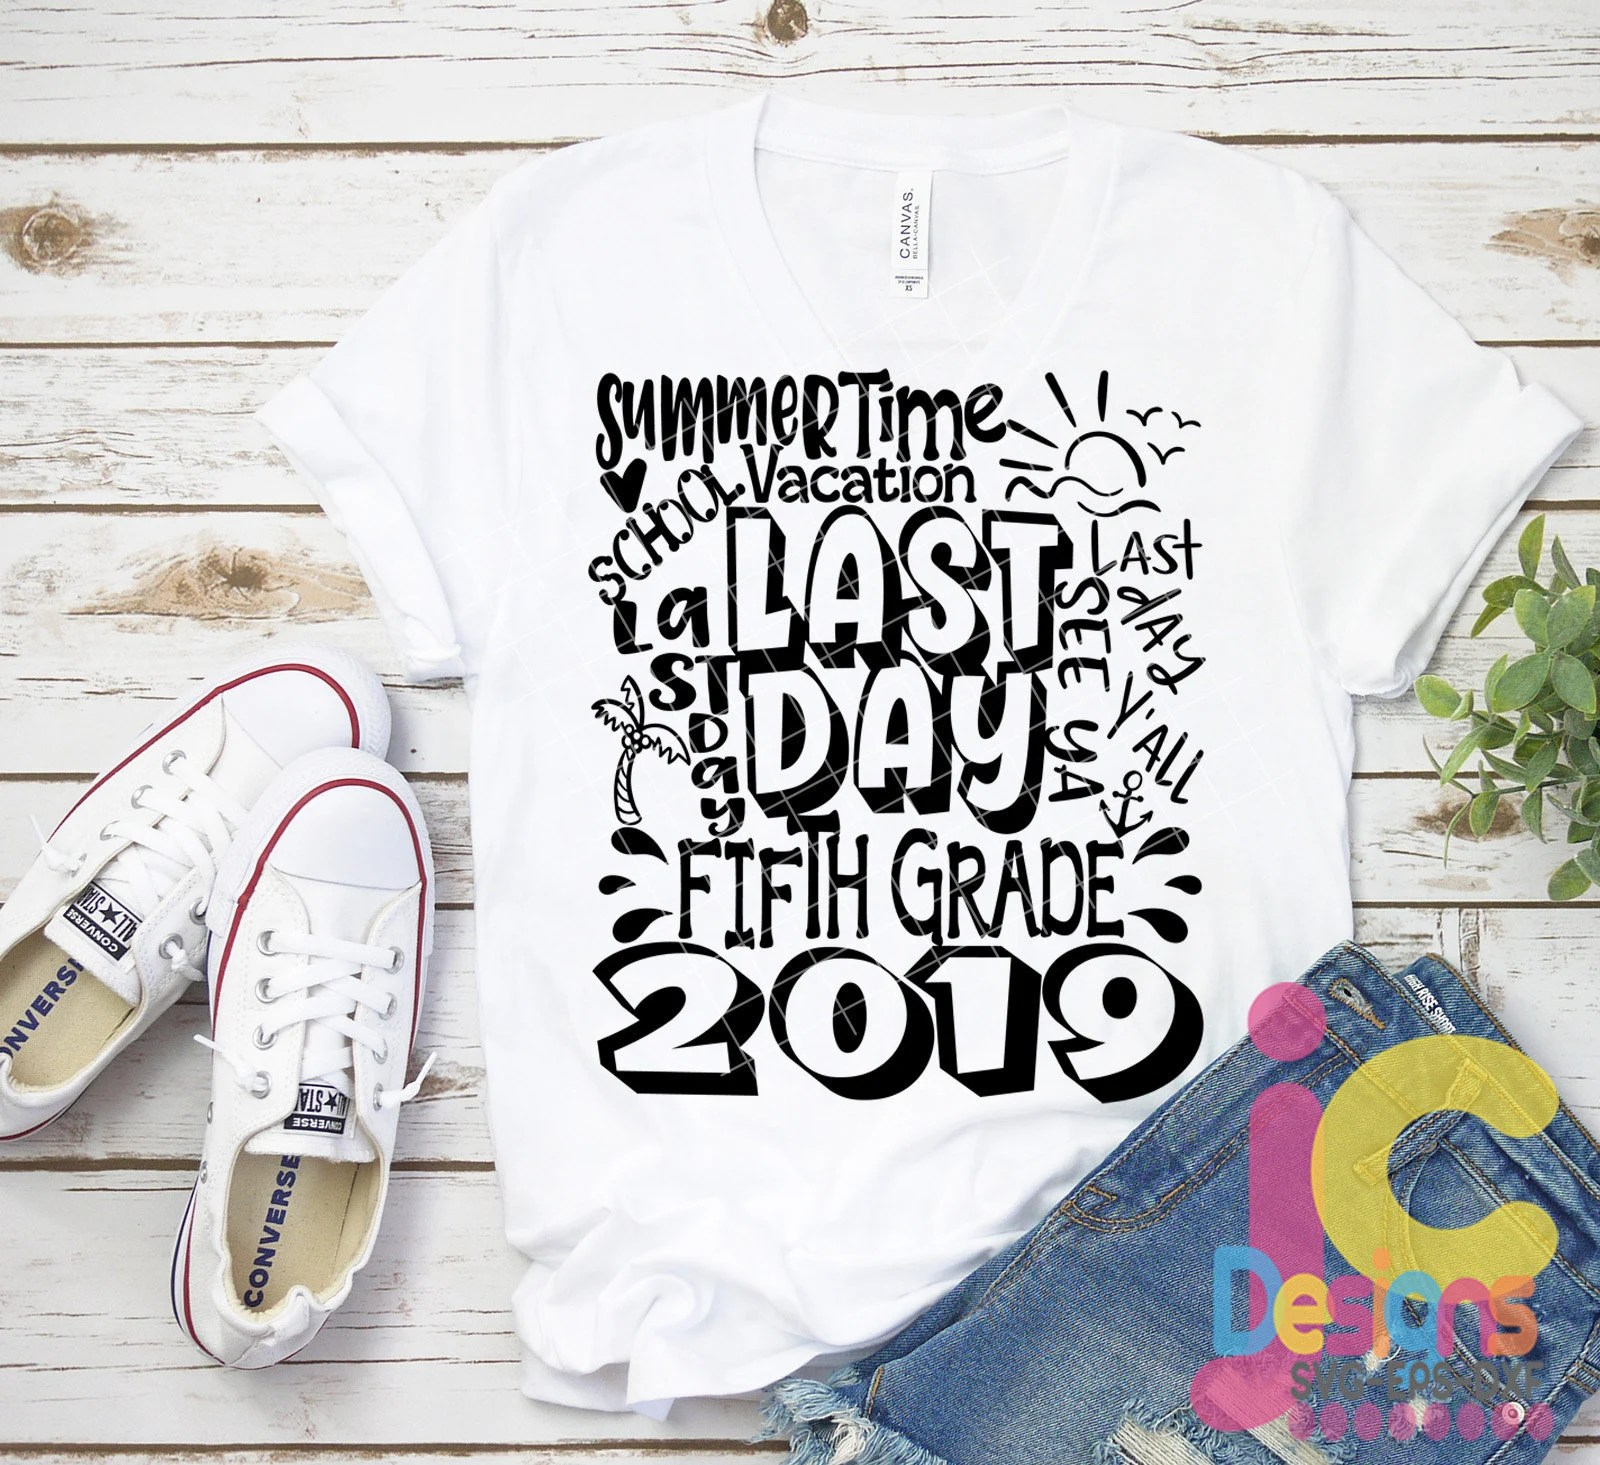 5th Grade Fifth Grade Last Day Svg Typography Of